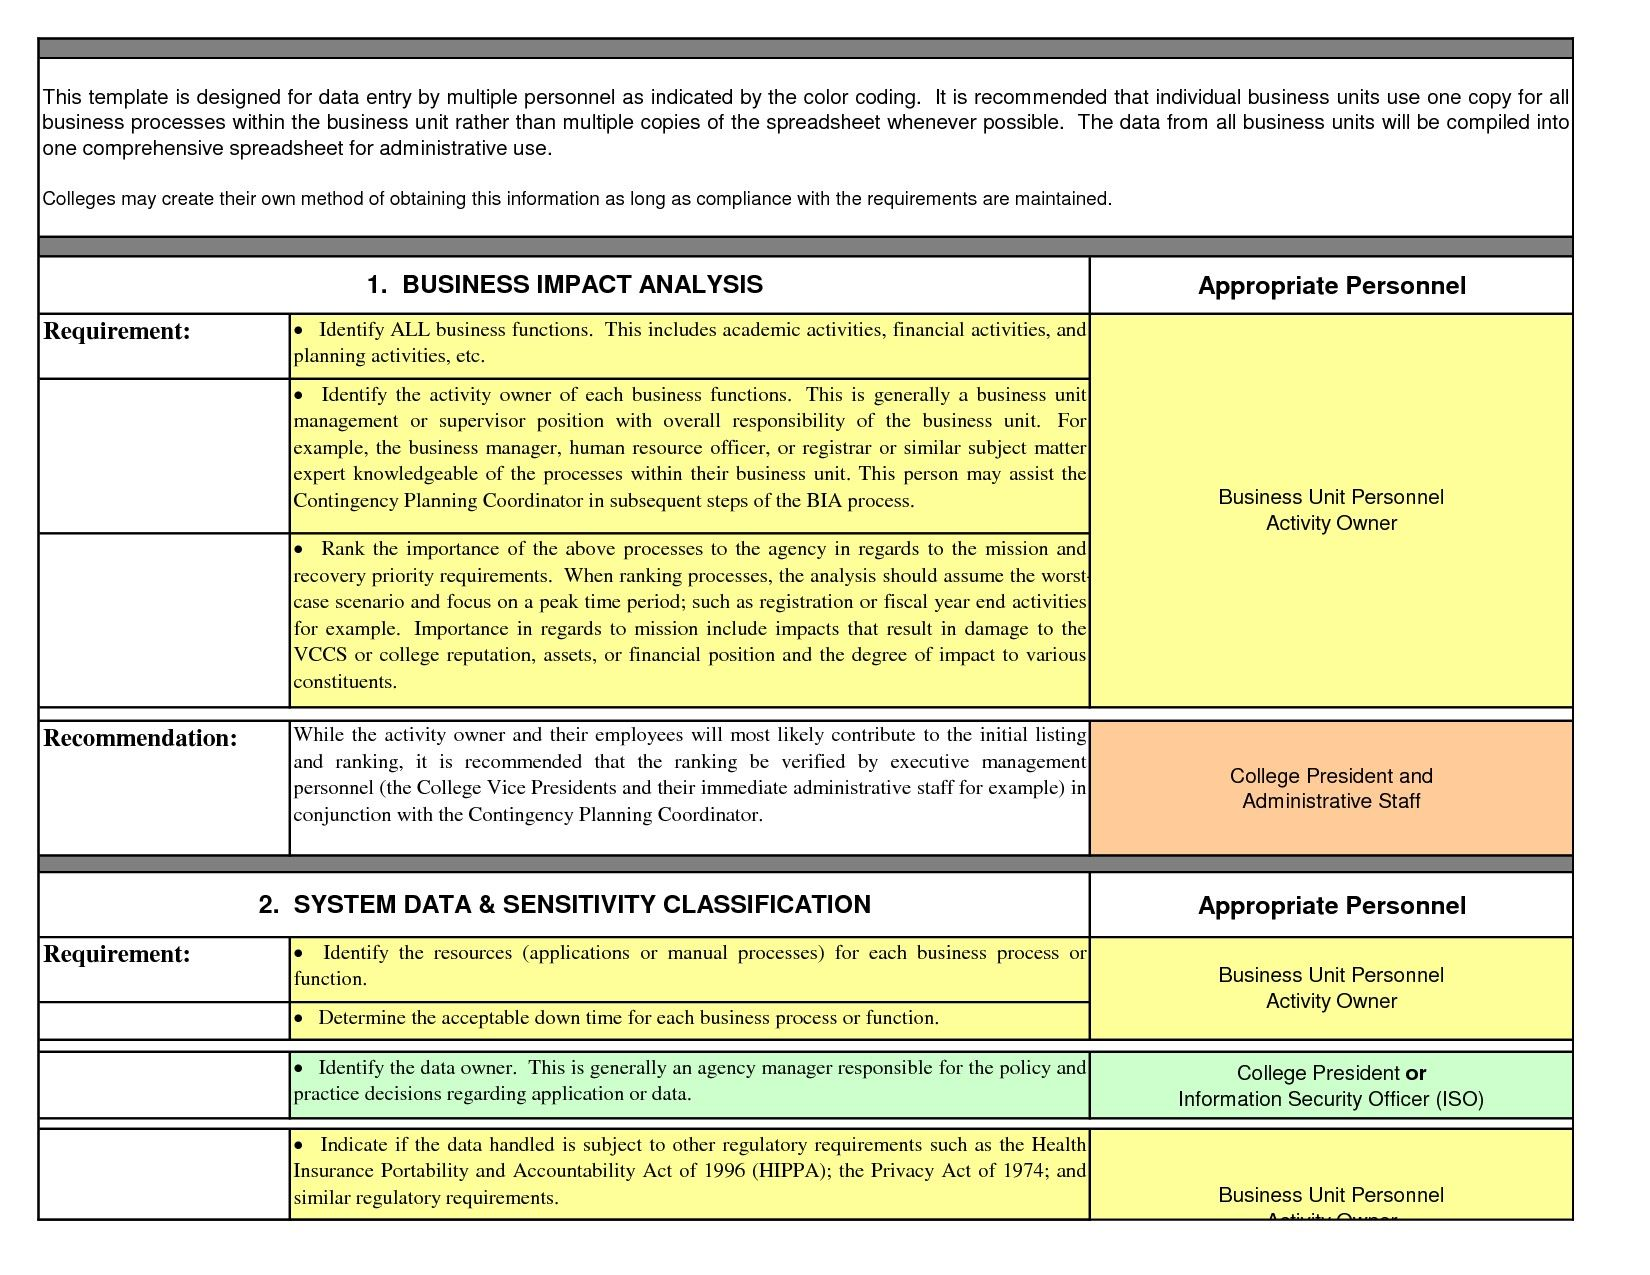 Download New Business Change Impact Assessment Template Can Save